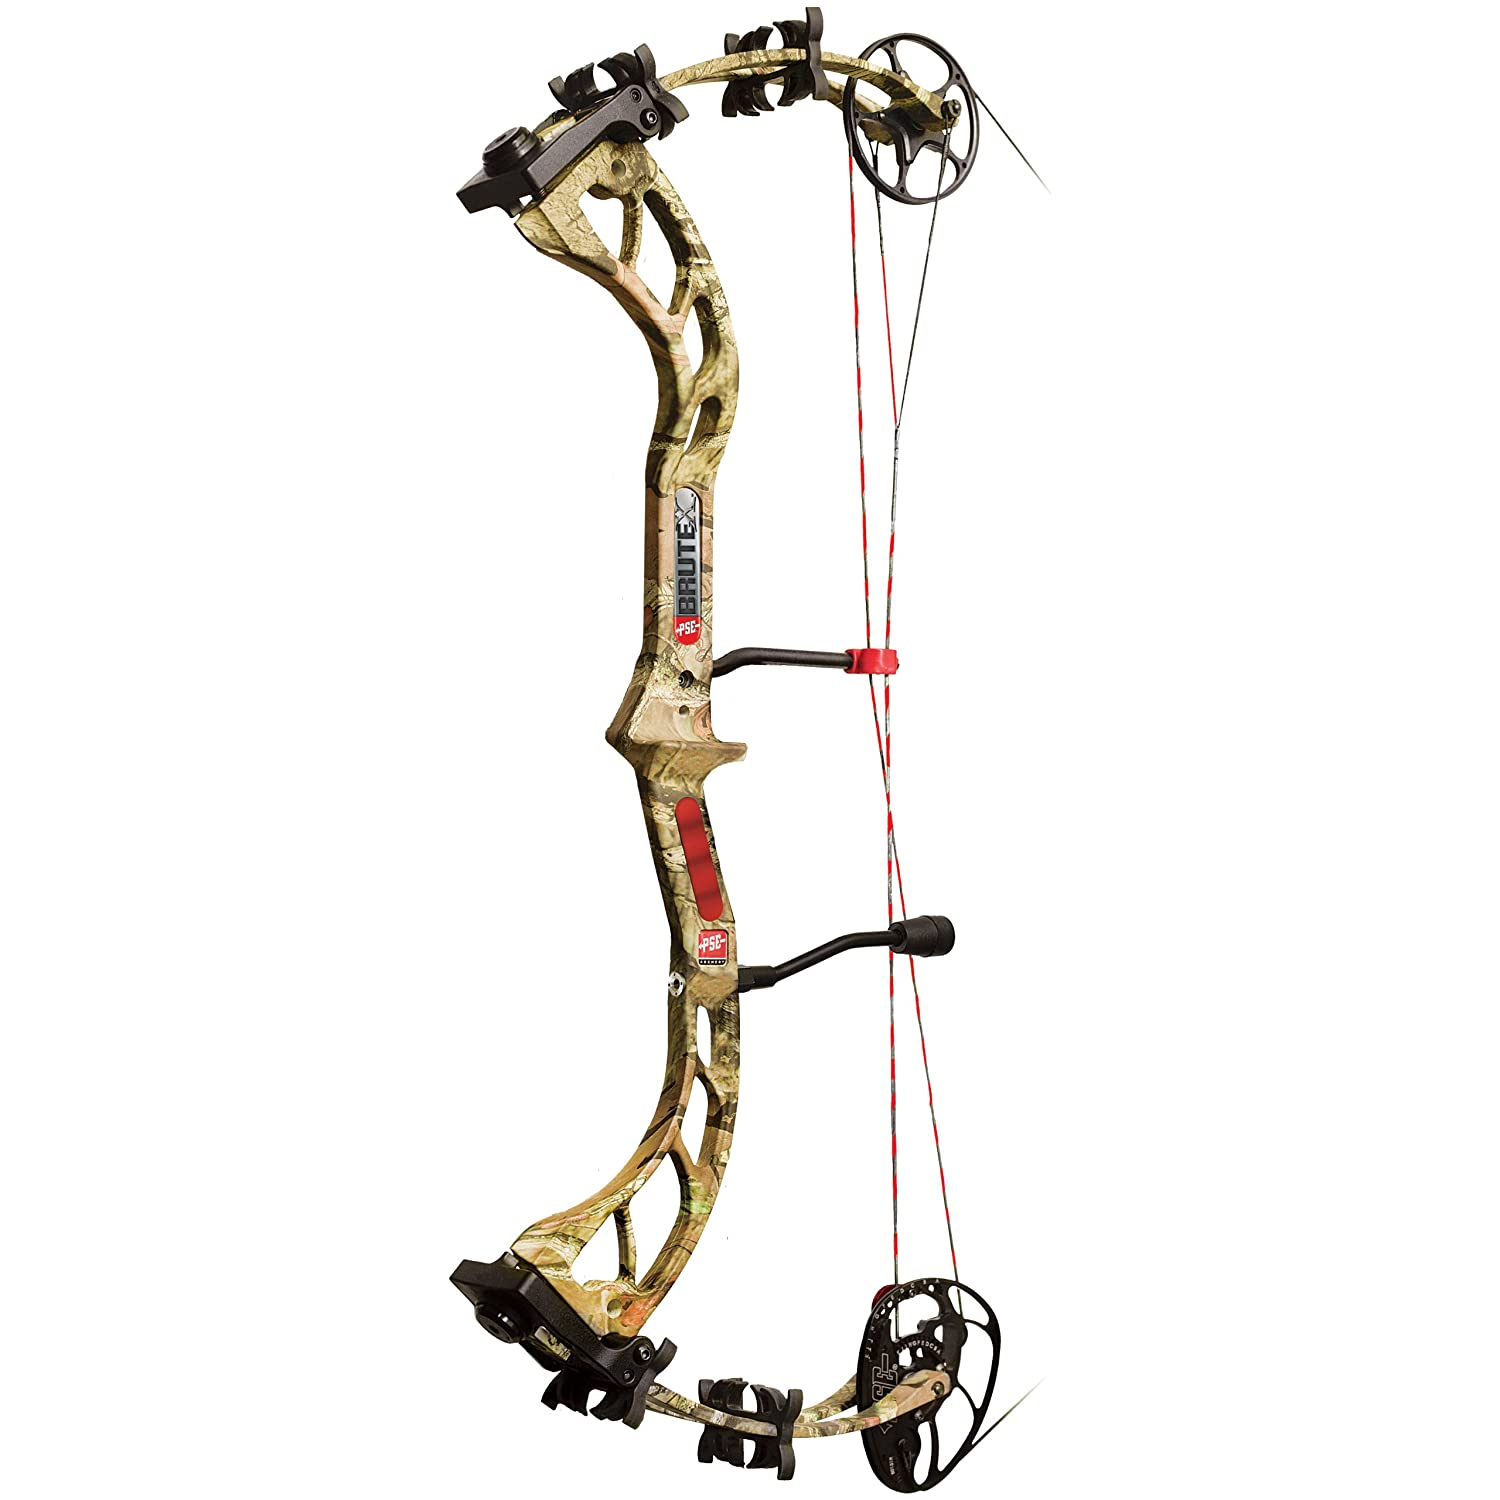 PSE Brute X Left Hand Bow, 60-Pound, Mossy Oak Break Up Infinity